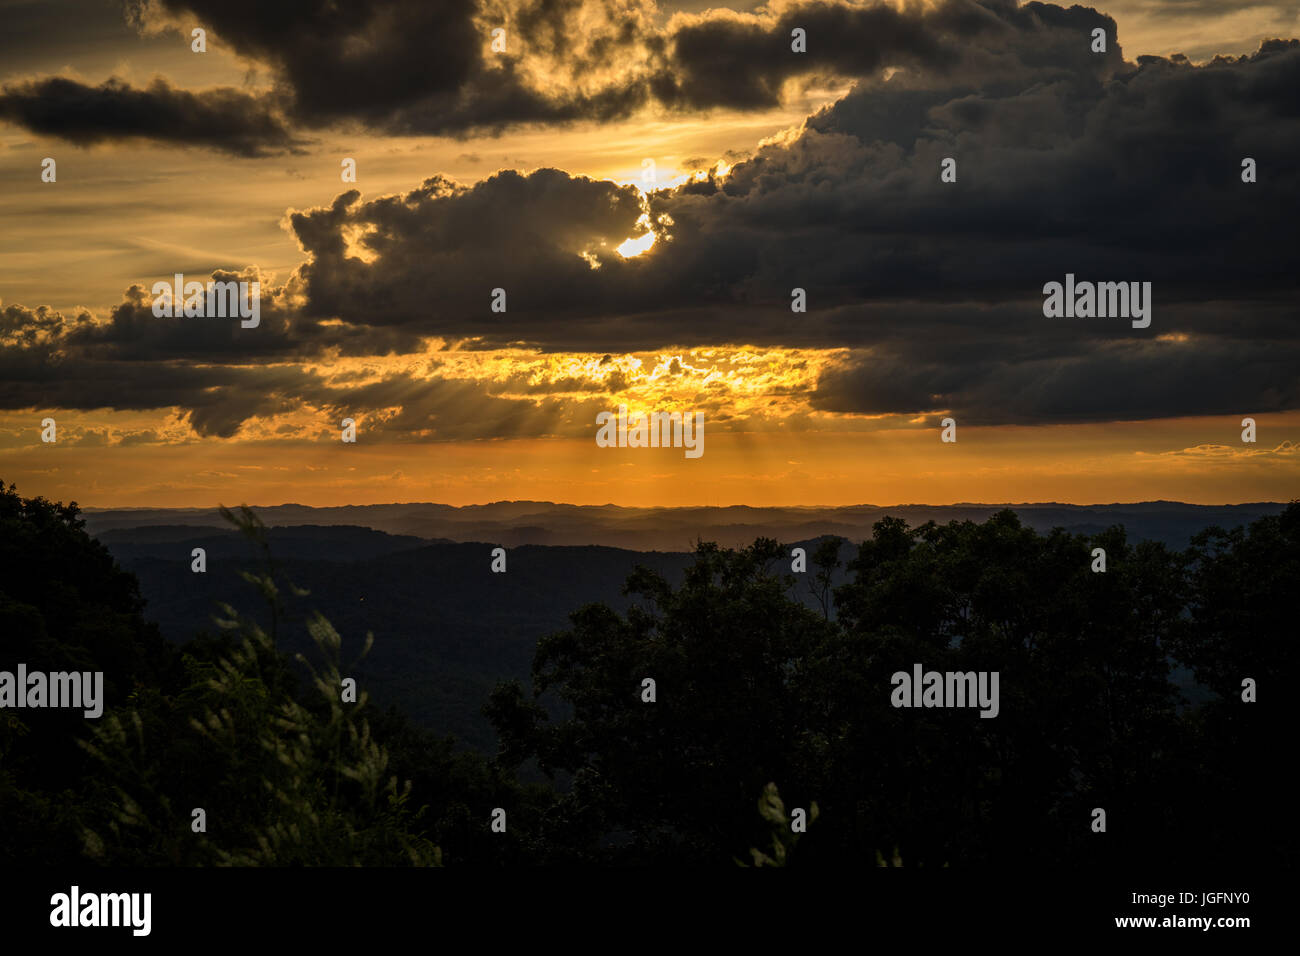 A sunset above the mountain in Central Appalachia. - Stock Image